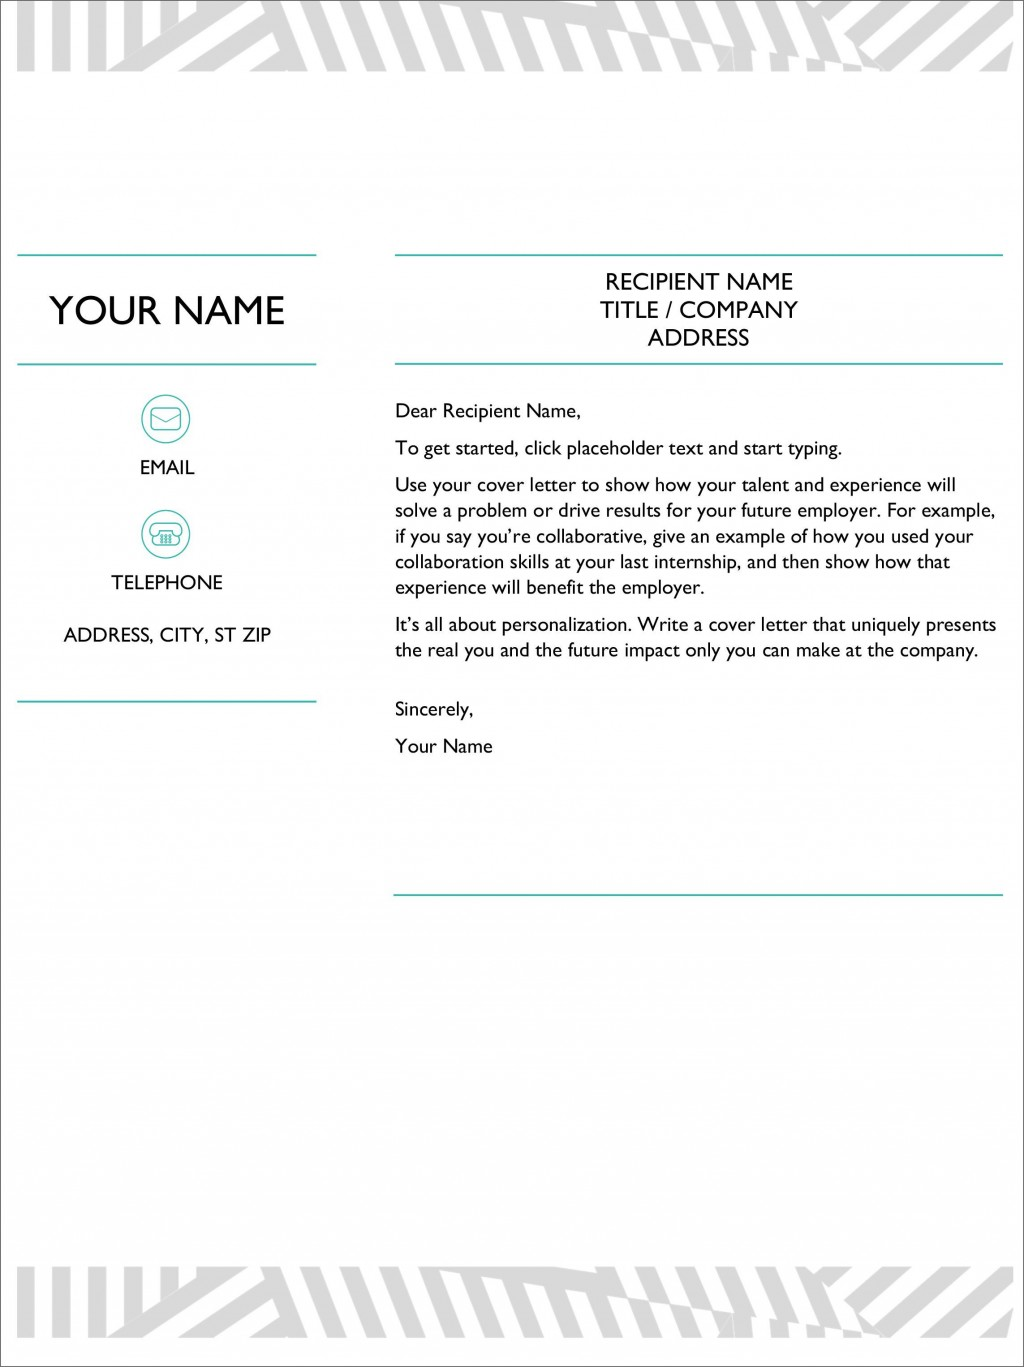 005 Awful Letter Template M Word Highest Clarity  Fax Cover Microsoft Busines AuthorizationLarge